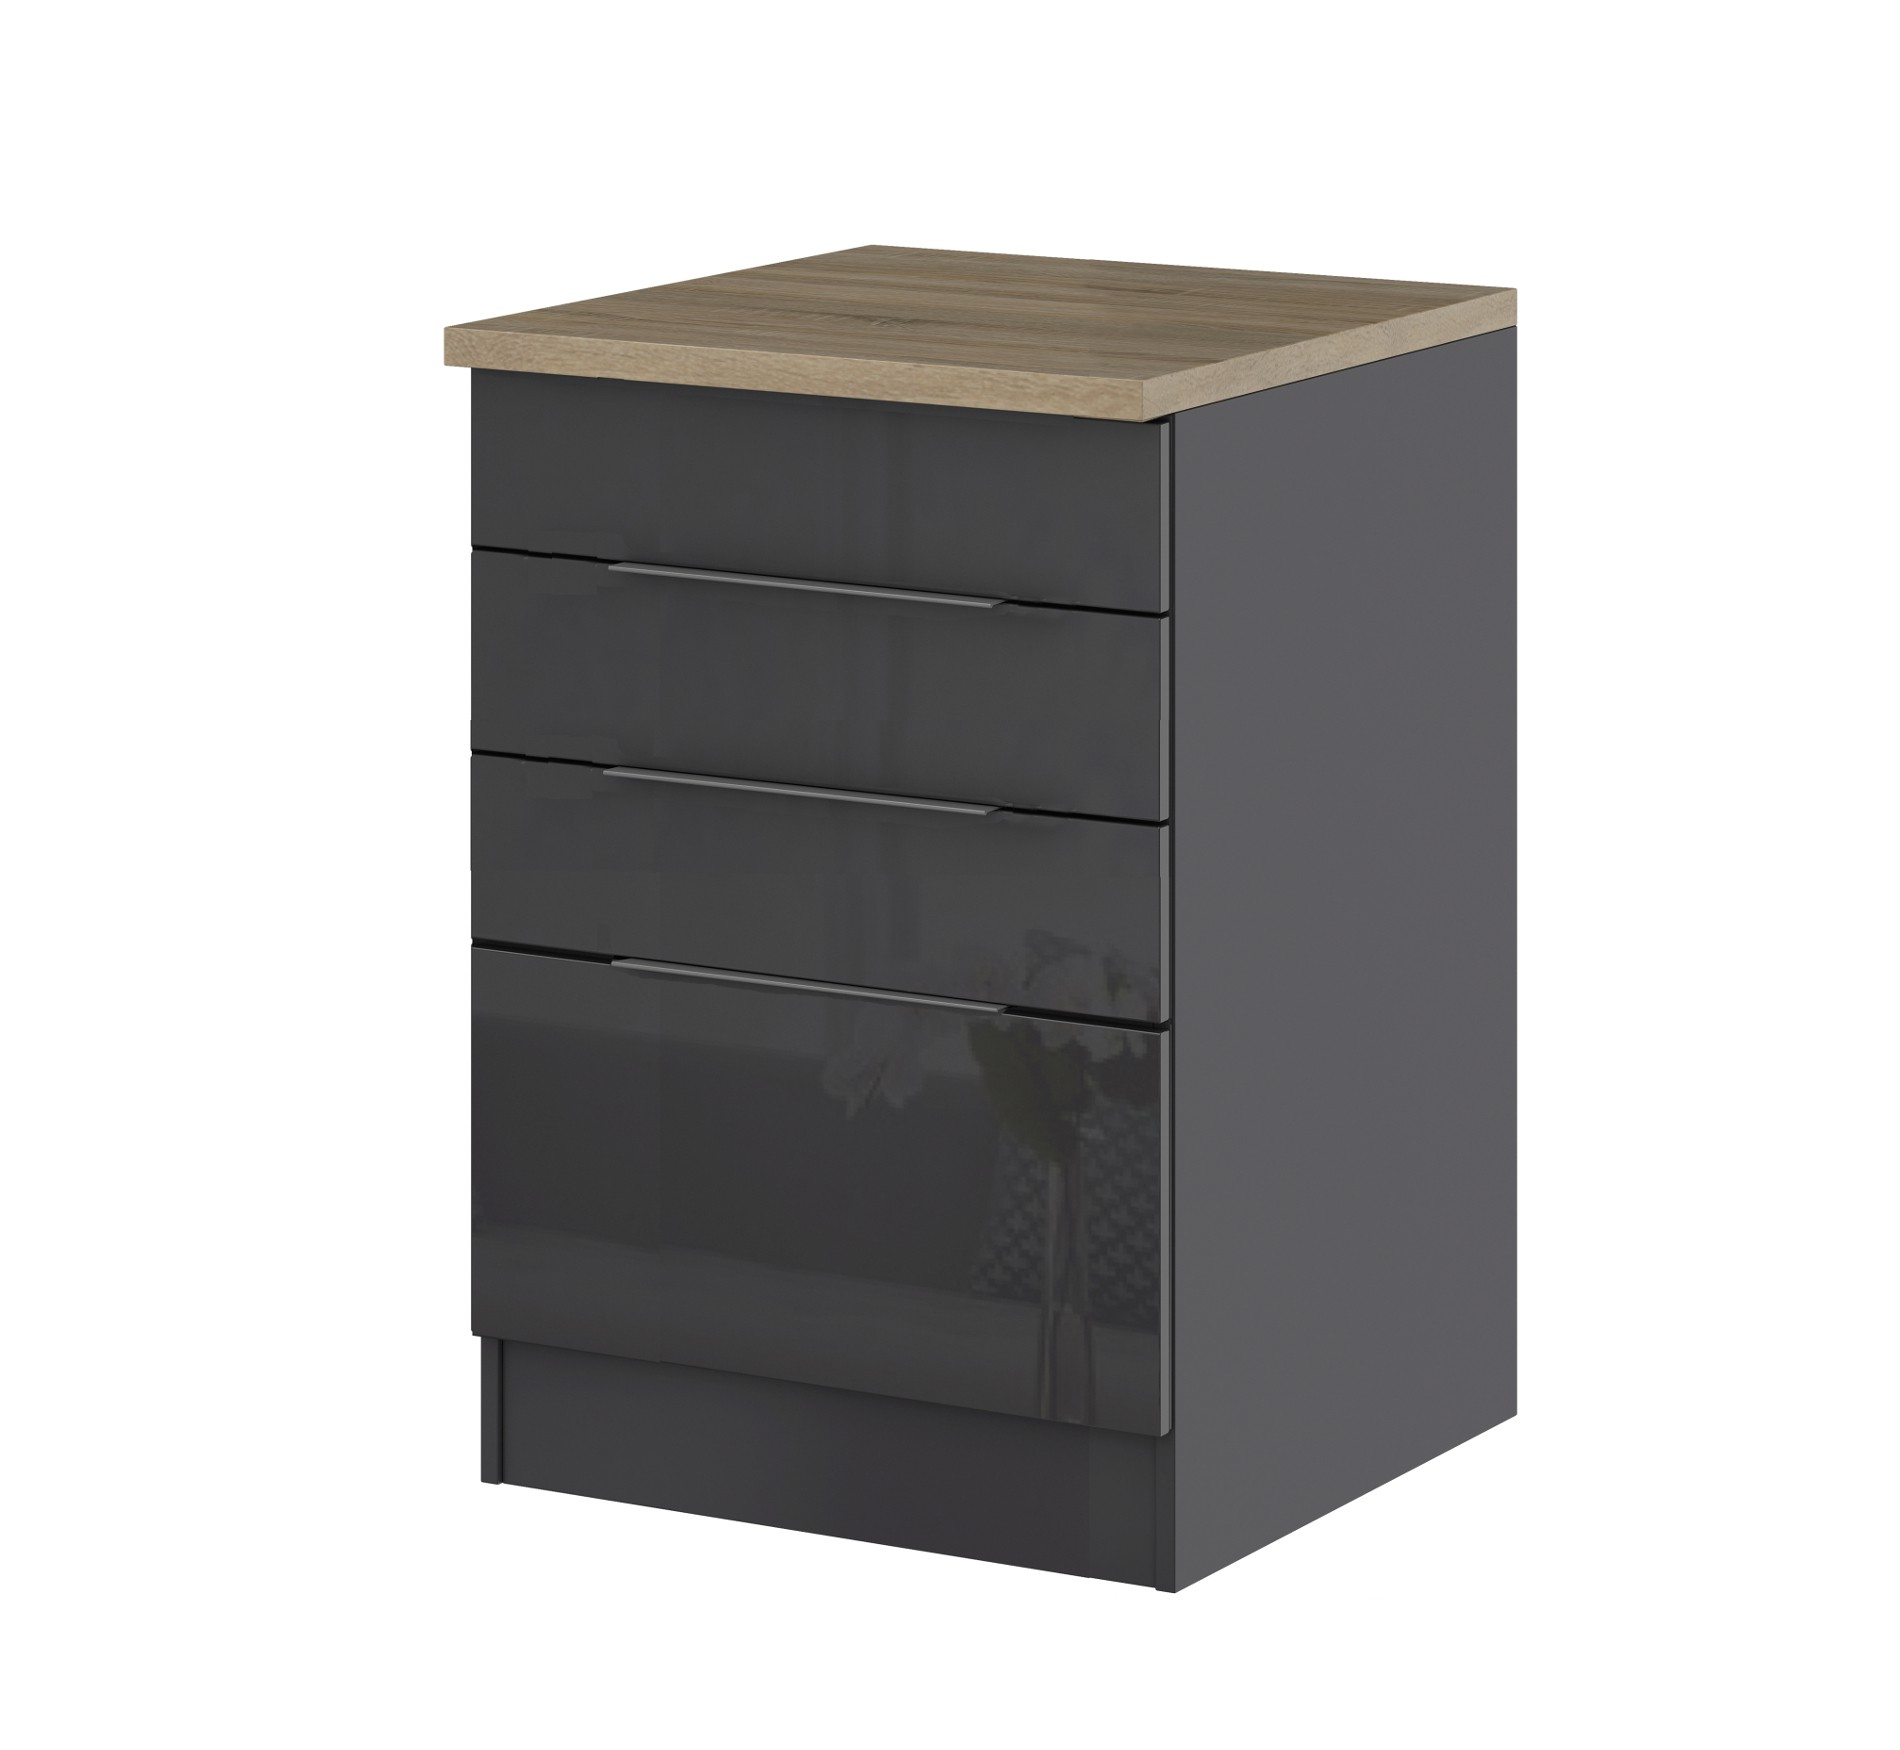 k chen unterschrank hamburg f r kochfeld 60 cm breit hochglanz grau k che k chen unterschr nke. Black Bedroom Furniture Sets. Home Design Ideas